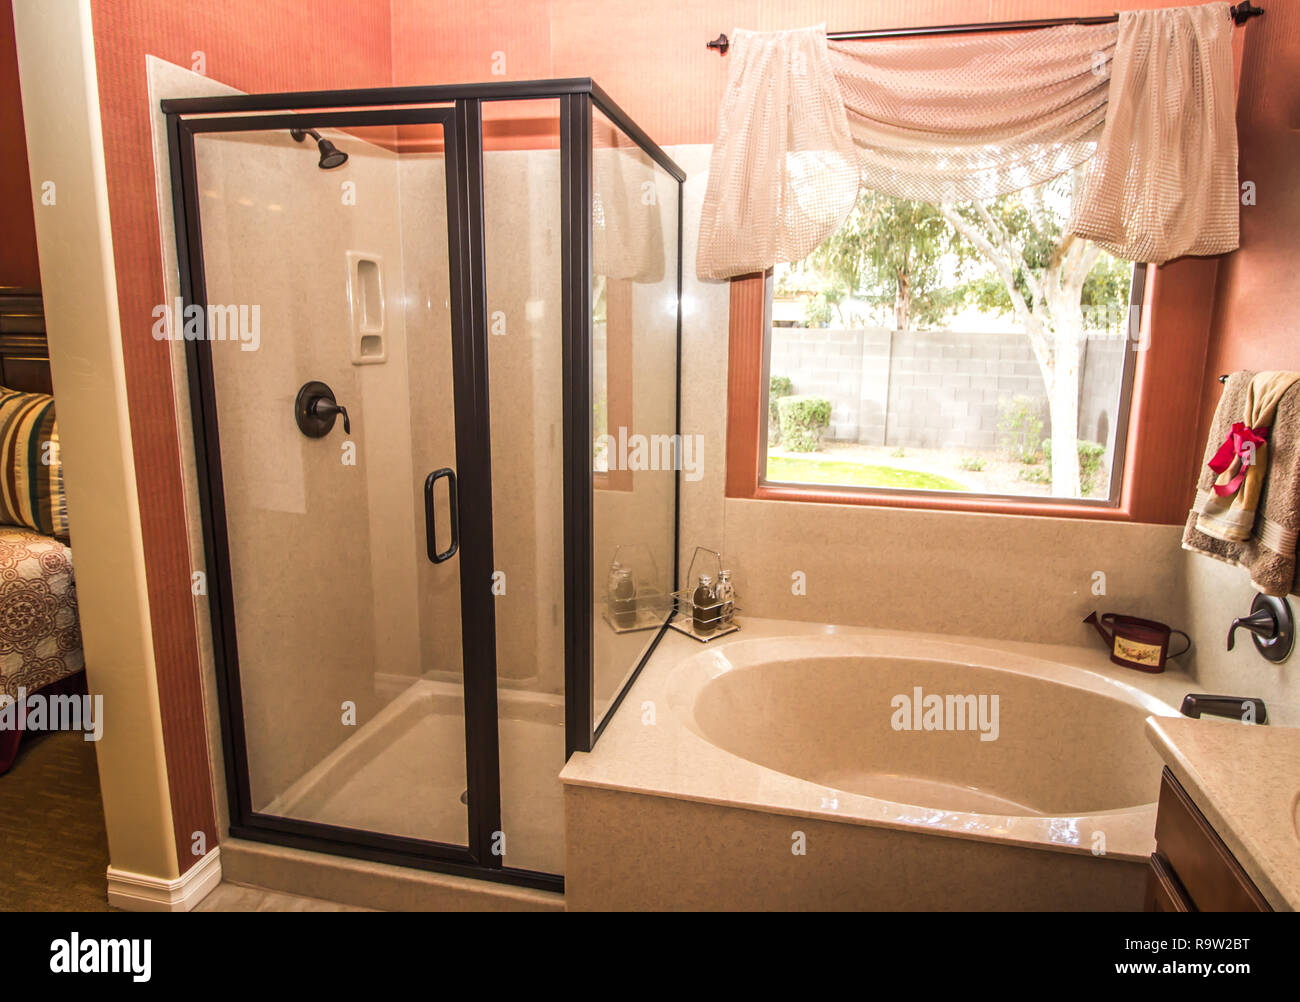 Coral Colored Bathroom With Shower And Bathtub Stock Photo